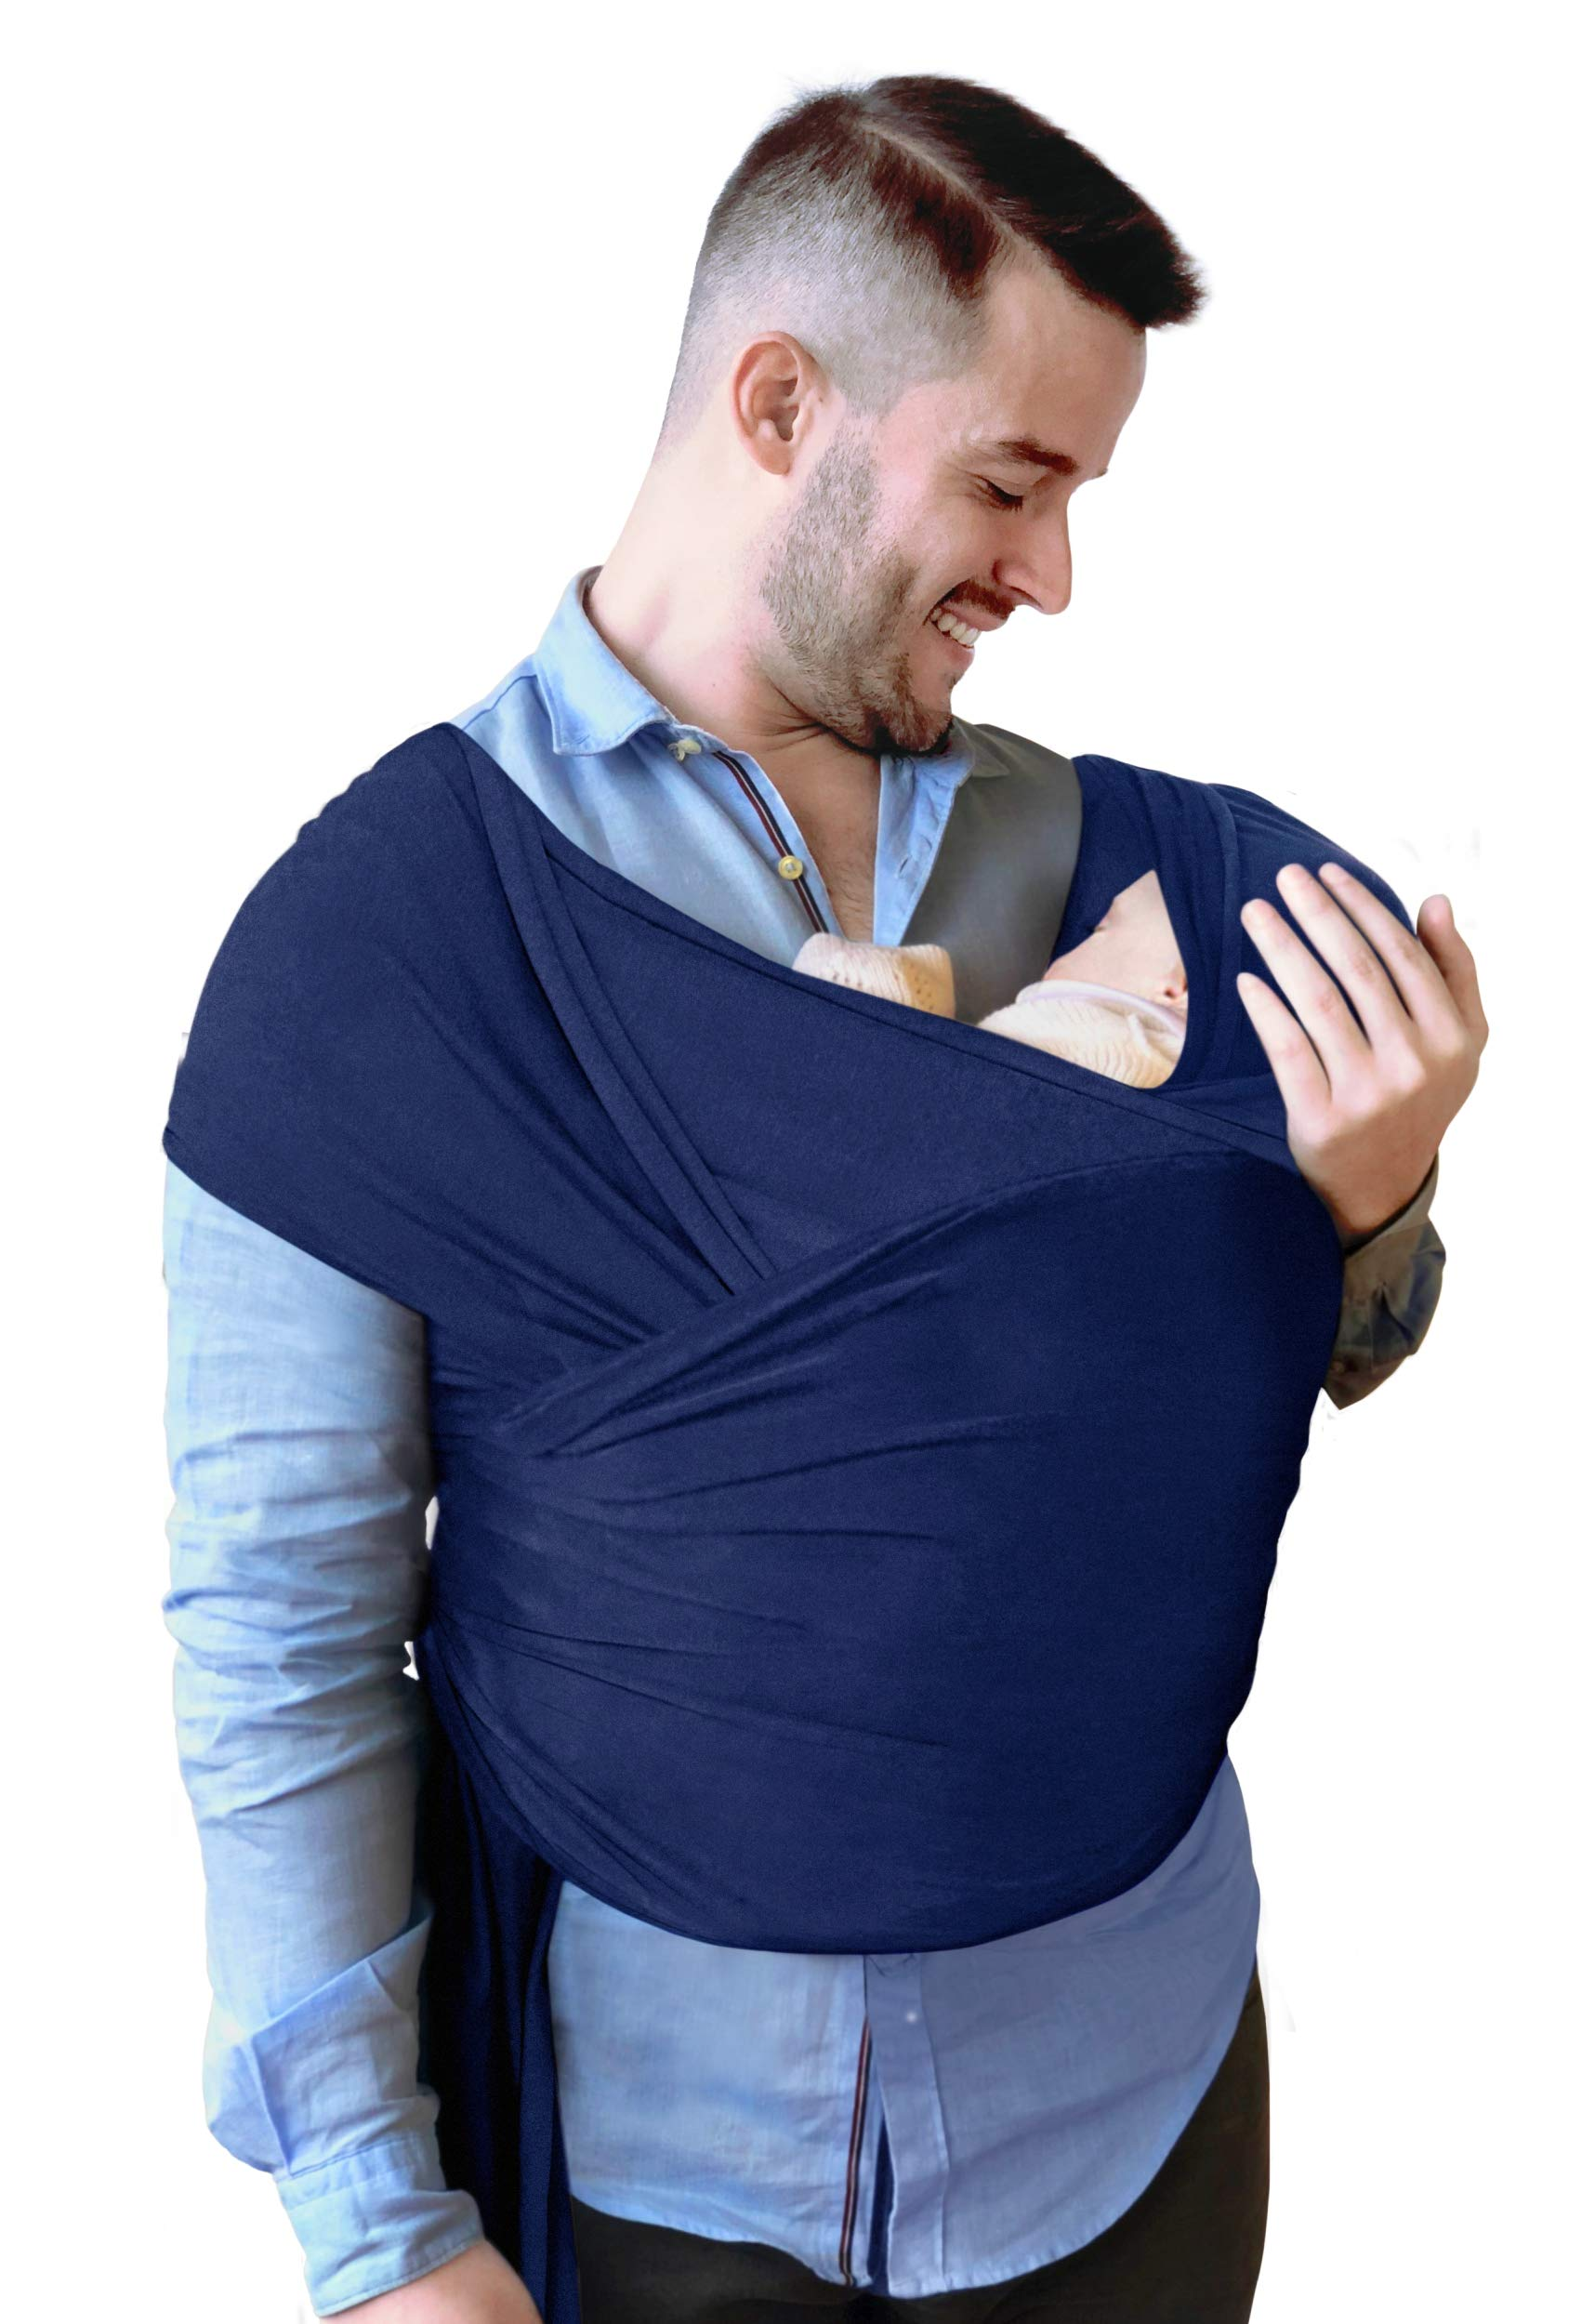 d103fc379e0 Baby Wrap Carrier - Baby Sling Kangaroo Wrap for Infant and Newborn -  Stretchy Hands Free